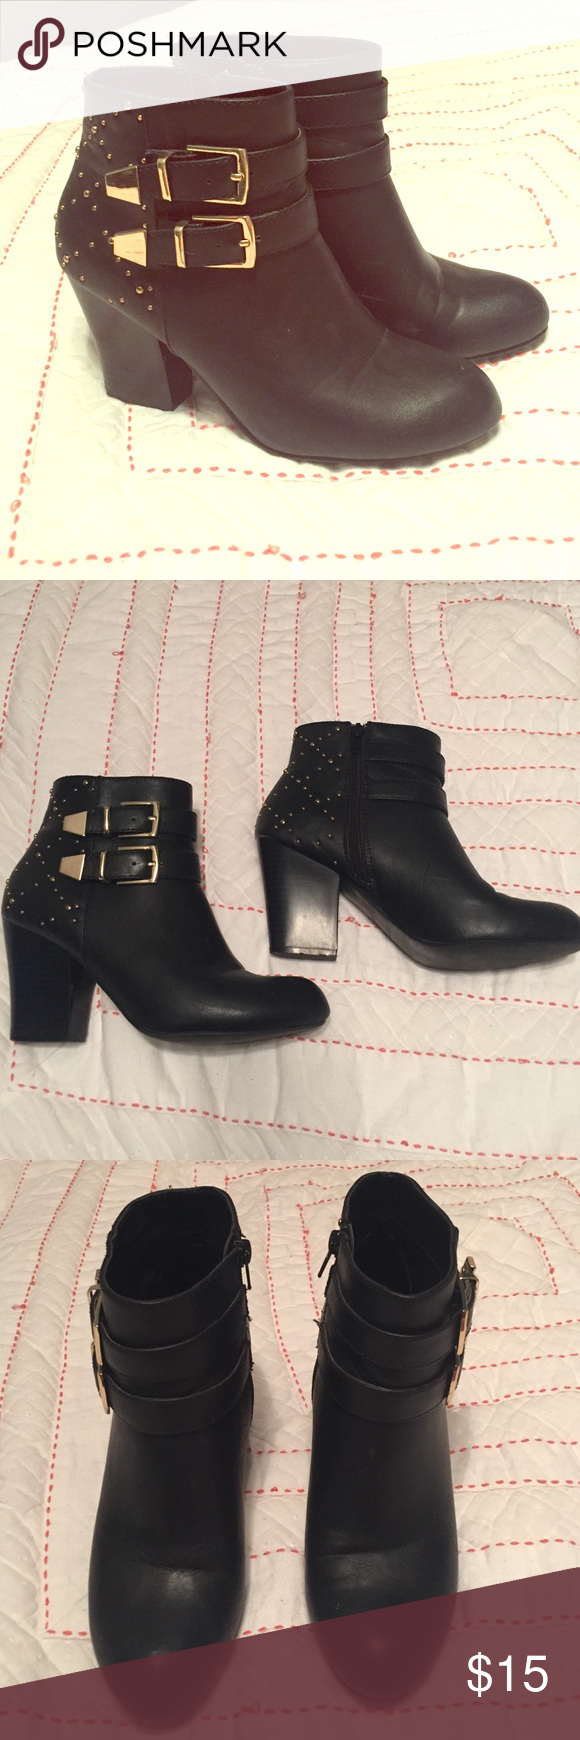 Gold buckle studded heeled booties Black heeled booties with zipper. Have gold buckles and the back heel is gold studded. Light wear on them but in great shape. There are a few light scuff marks on the inside of them, but they are not very noticeable. Outside heel of left shoe has a white scuff mark. Charming Charlie Shoes Ankle Boots & Booties